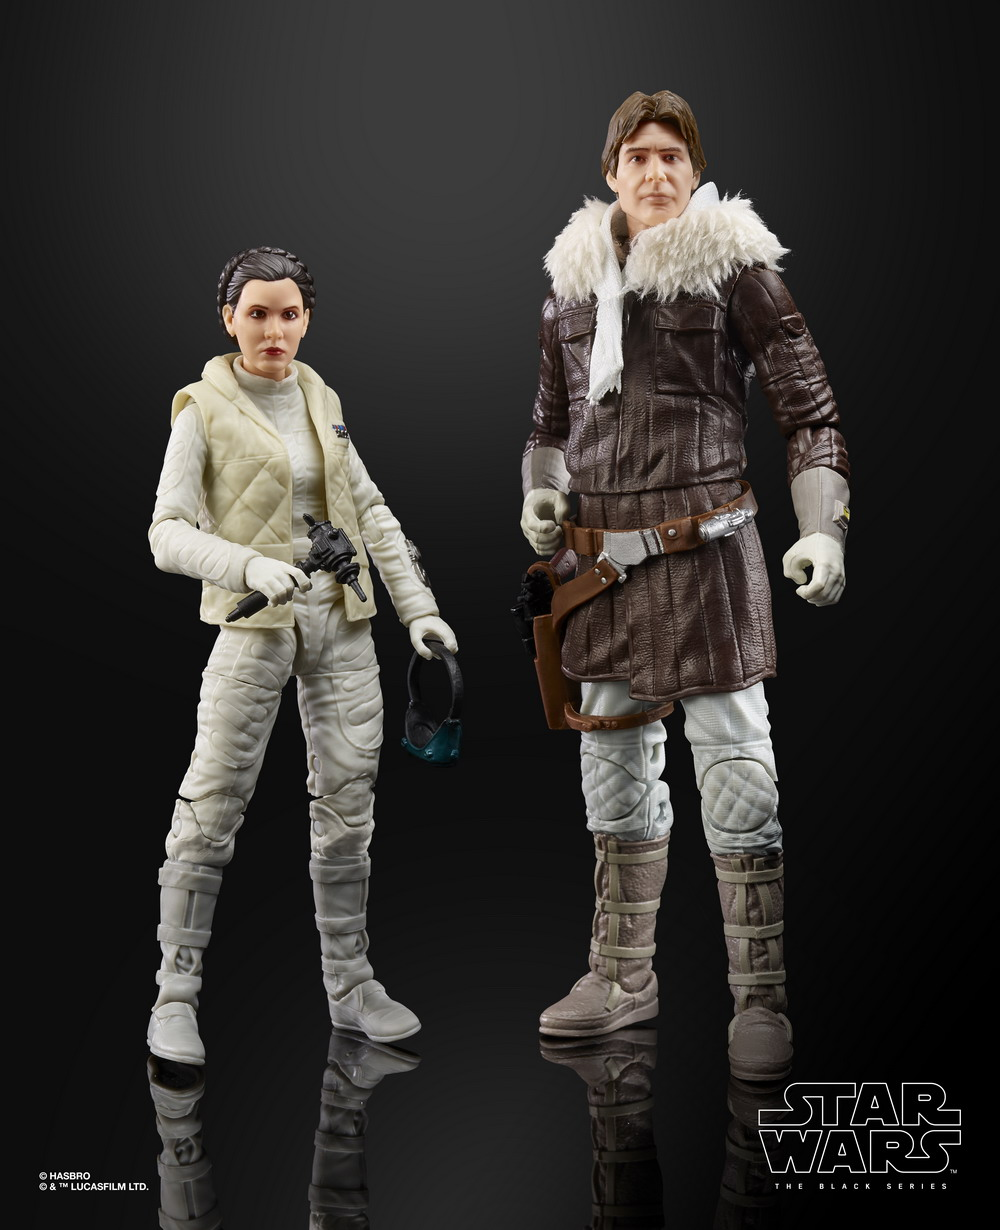 STAR-WARS-THE-BLACK-SERIES-HAN-SOLO-AND-PRINCESS-LEIA-ORGANA-Figures-oop1